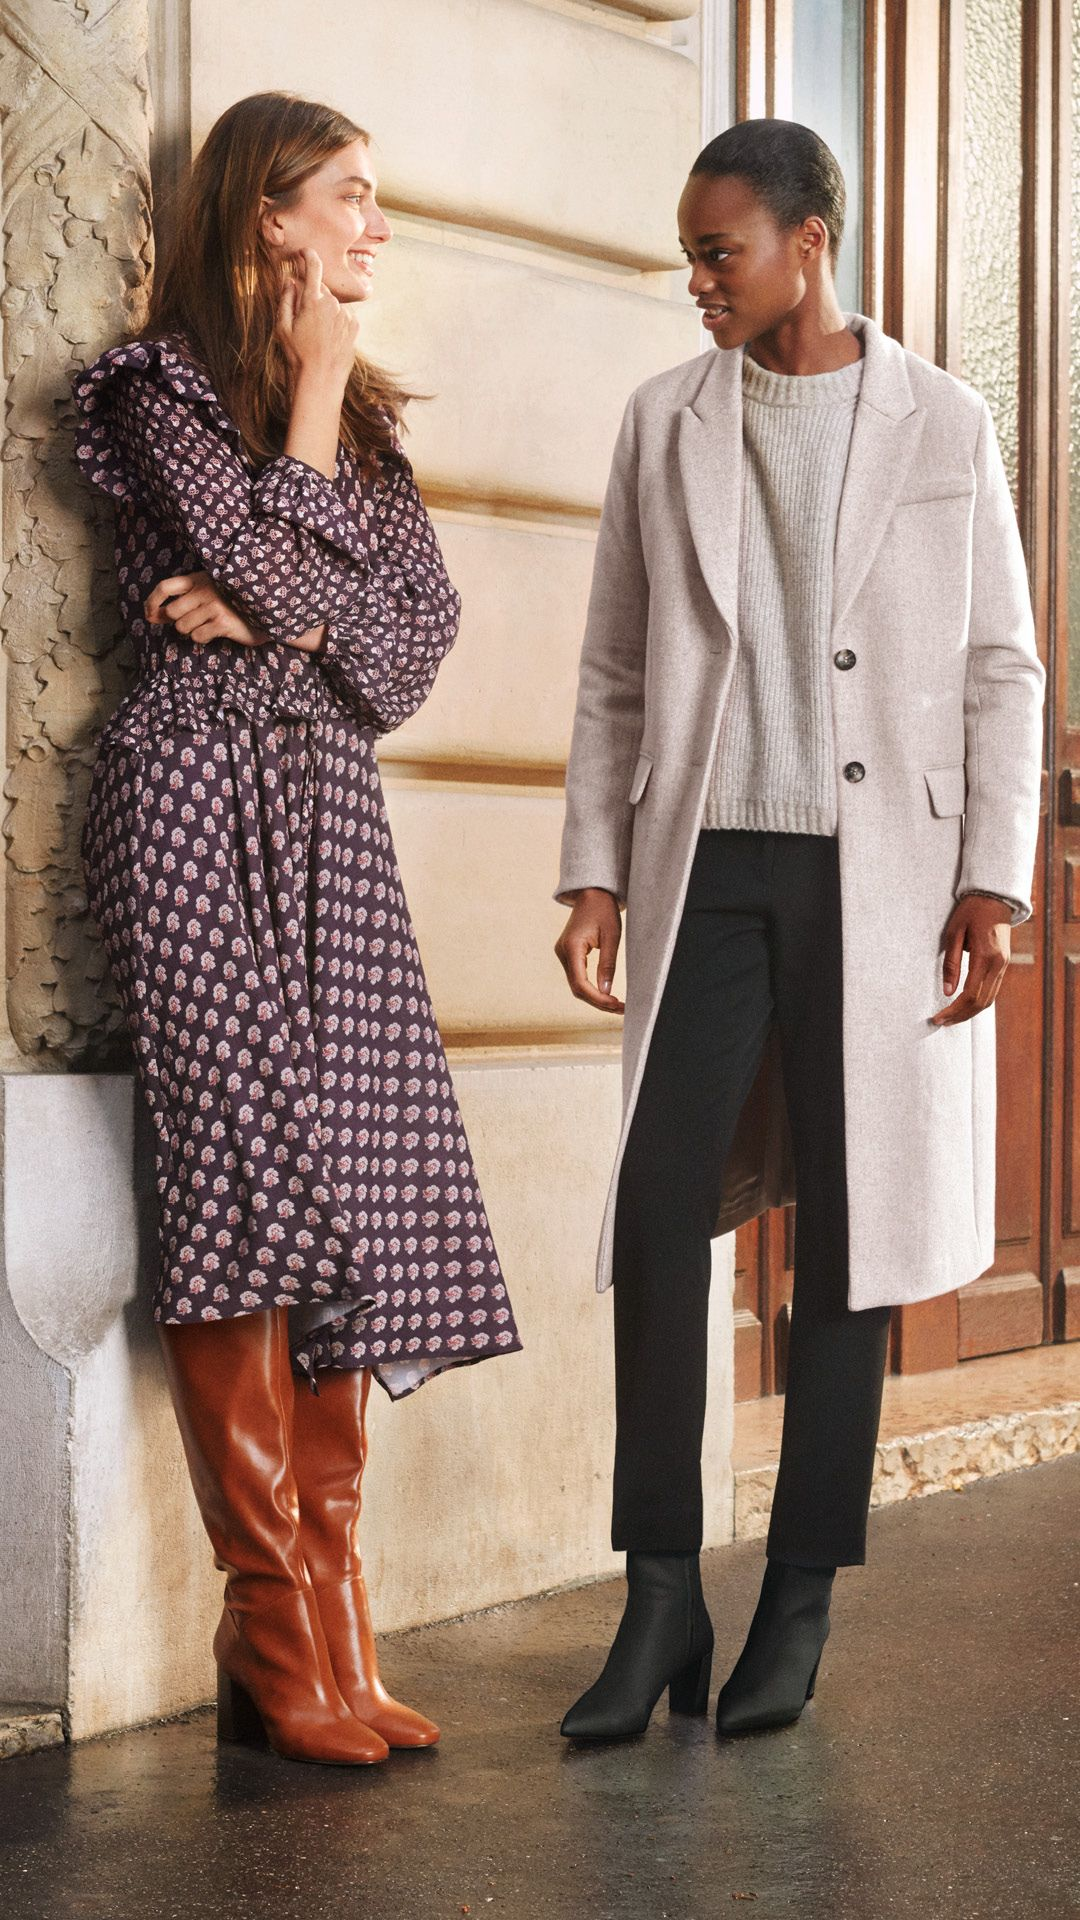 2834b9ac2 H M AUTUMN FASHION 2018 FOR EVERY YOU  The new autumn collection for every  you is now available in store and online.  HM I H M Fall Winter